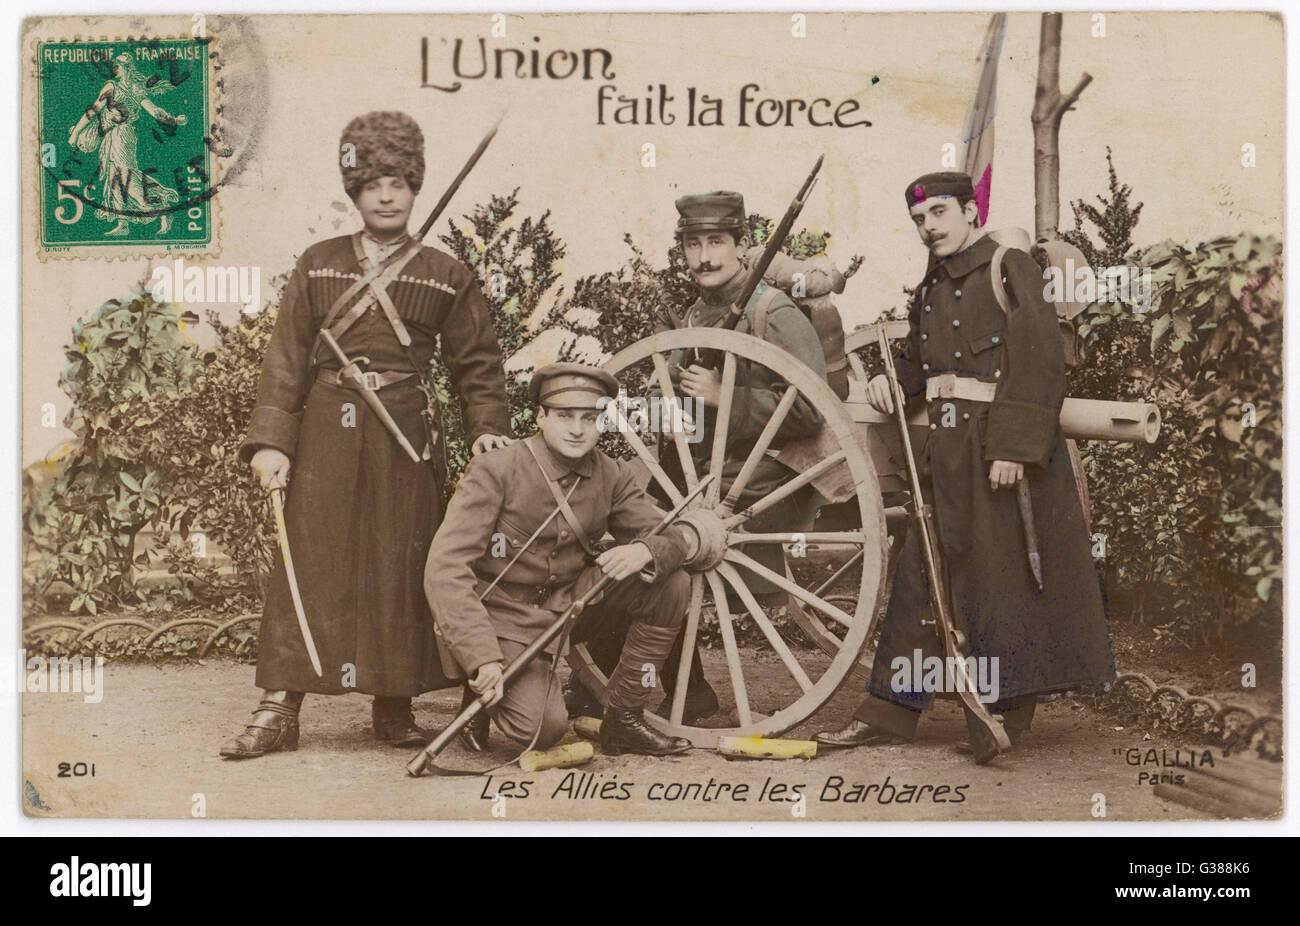 The Allies against the Barbarians        Date: 1915 - Stock Image